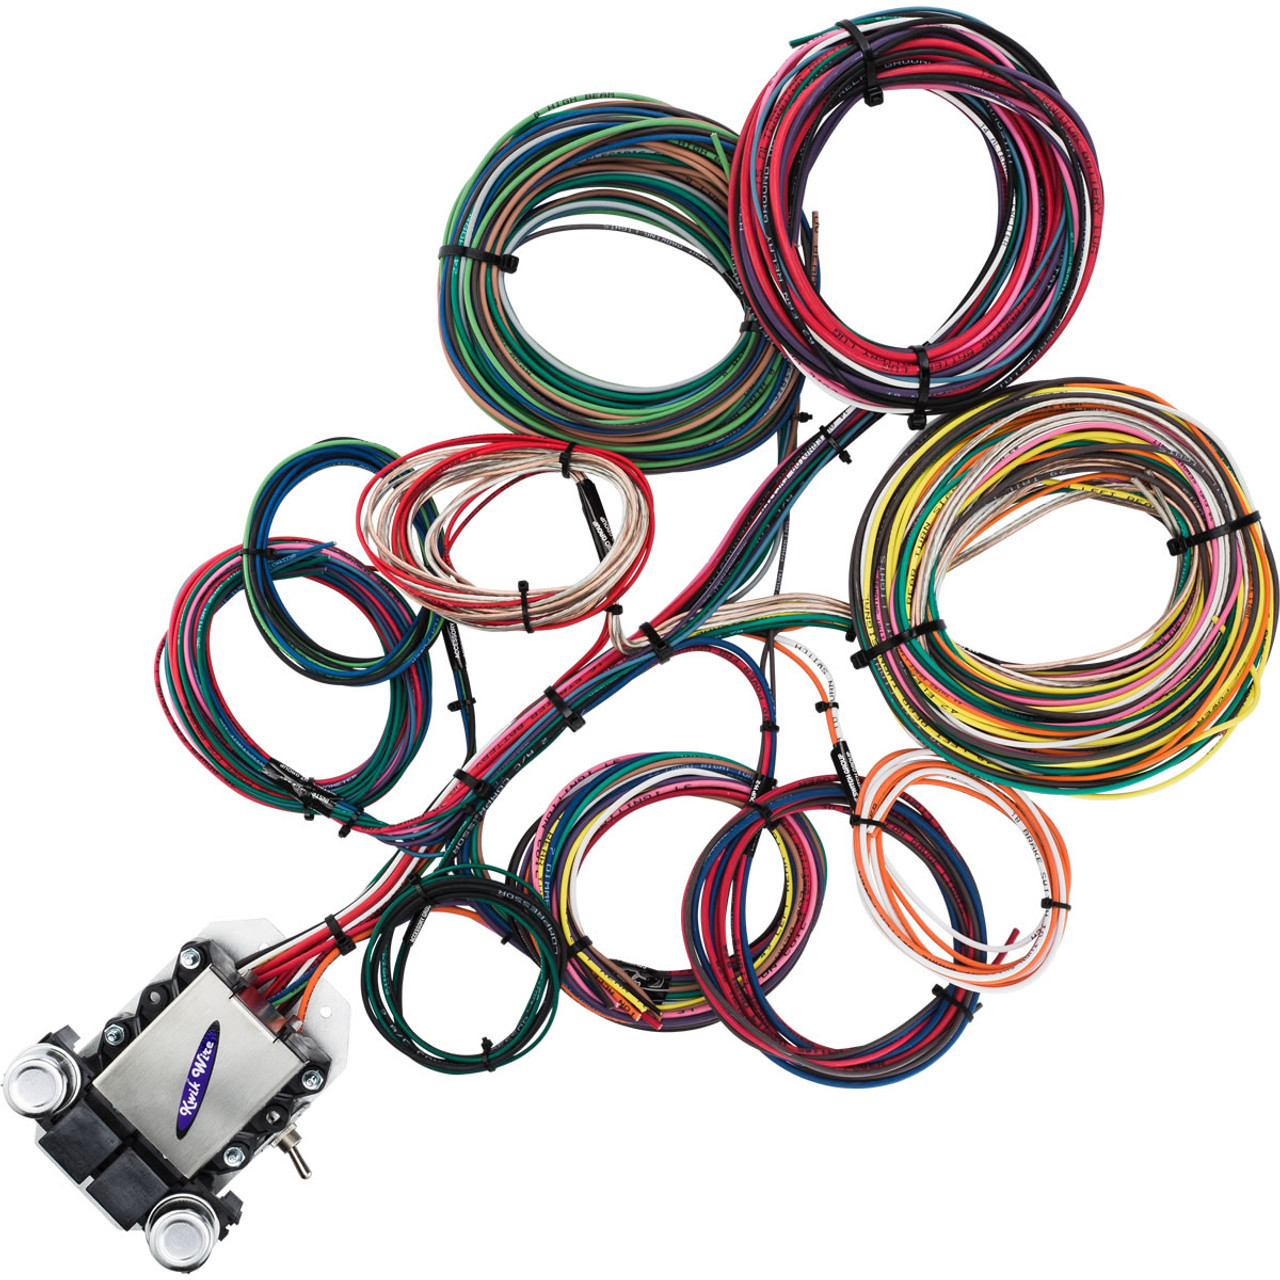 small resolution of 14 circuit ford wire harness kwikwire com electrify your ride ford wiring harness kits e40d ford wiring harness